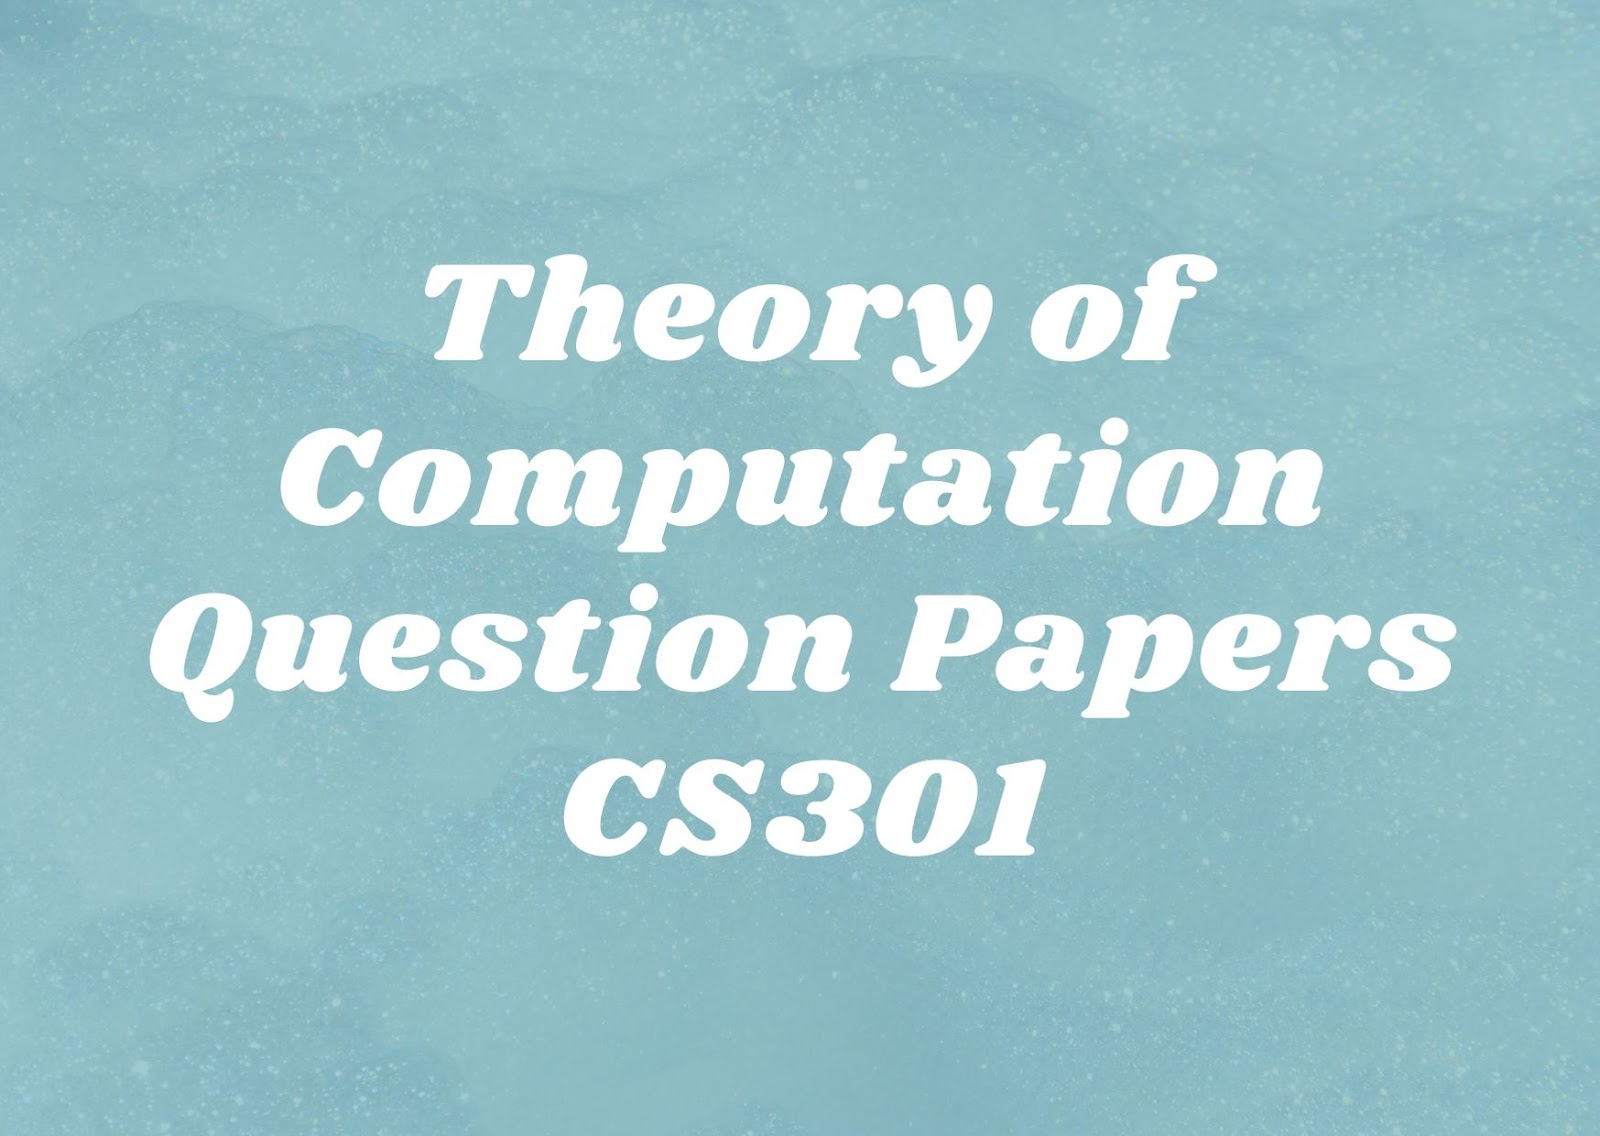 Theory of Computation | CS301 | Question Papers (2015 batch)